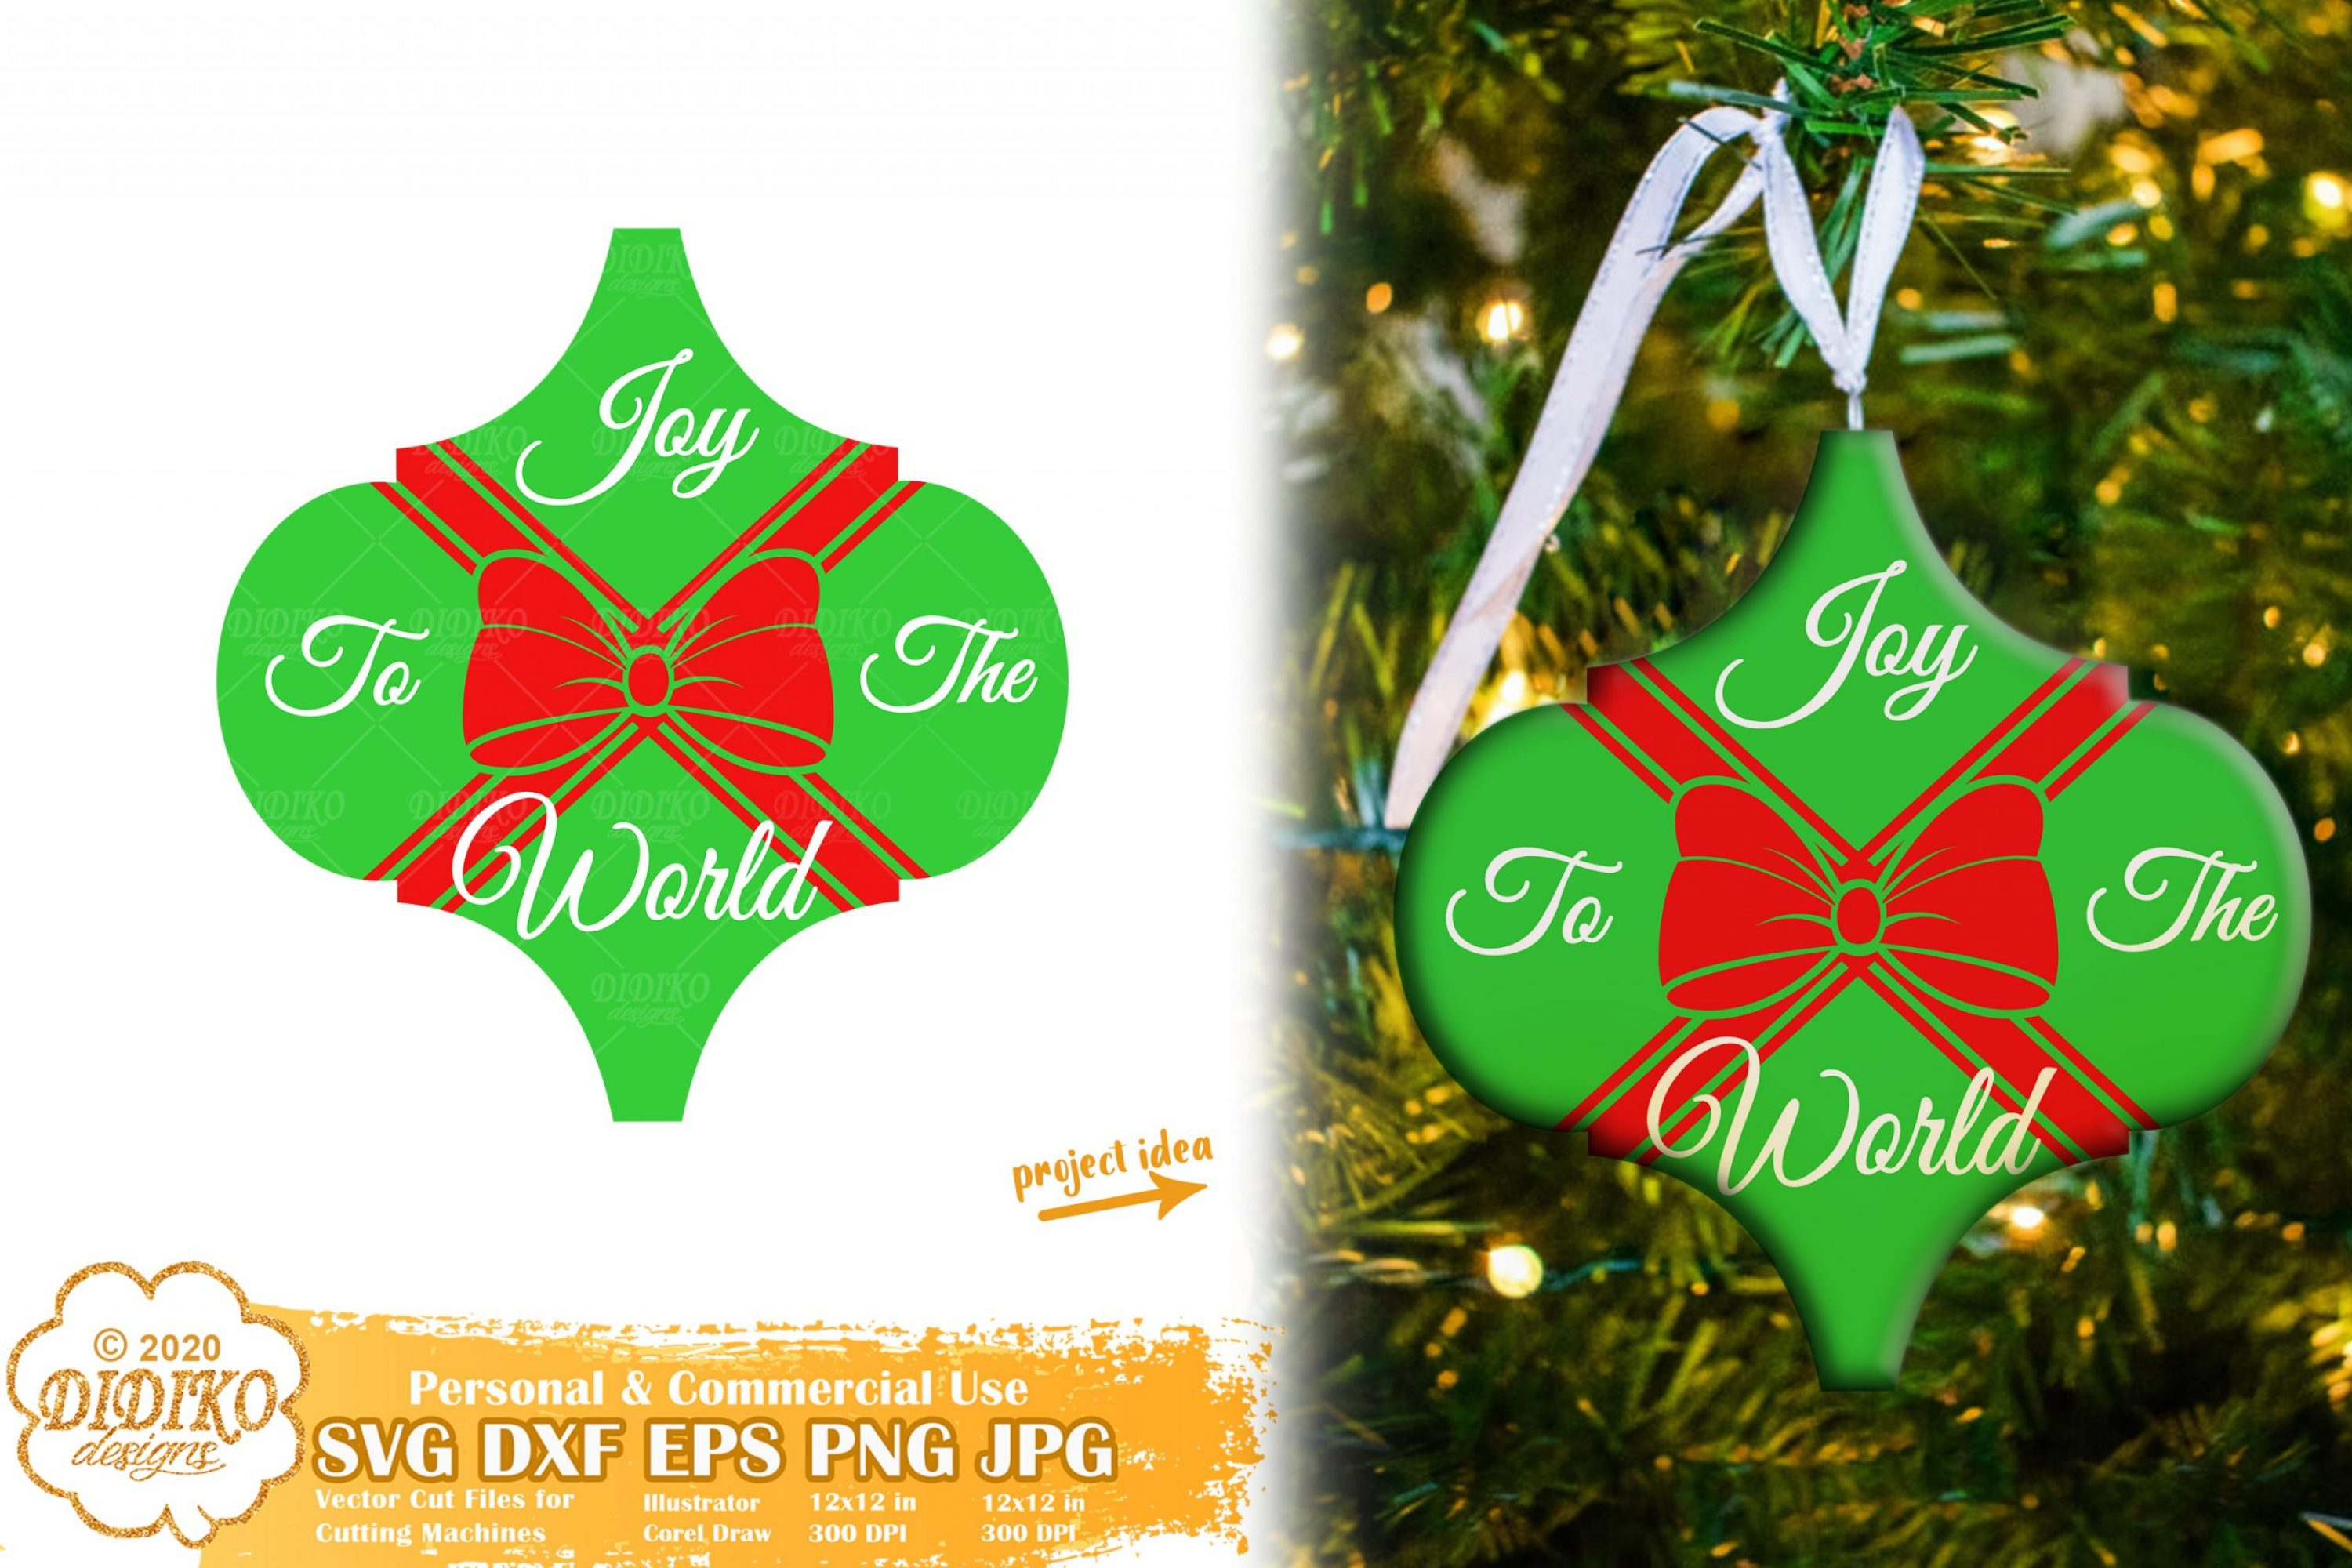 Arabesque SVG #3, Christmas Tile Ornament SVG